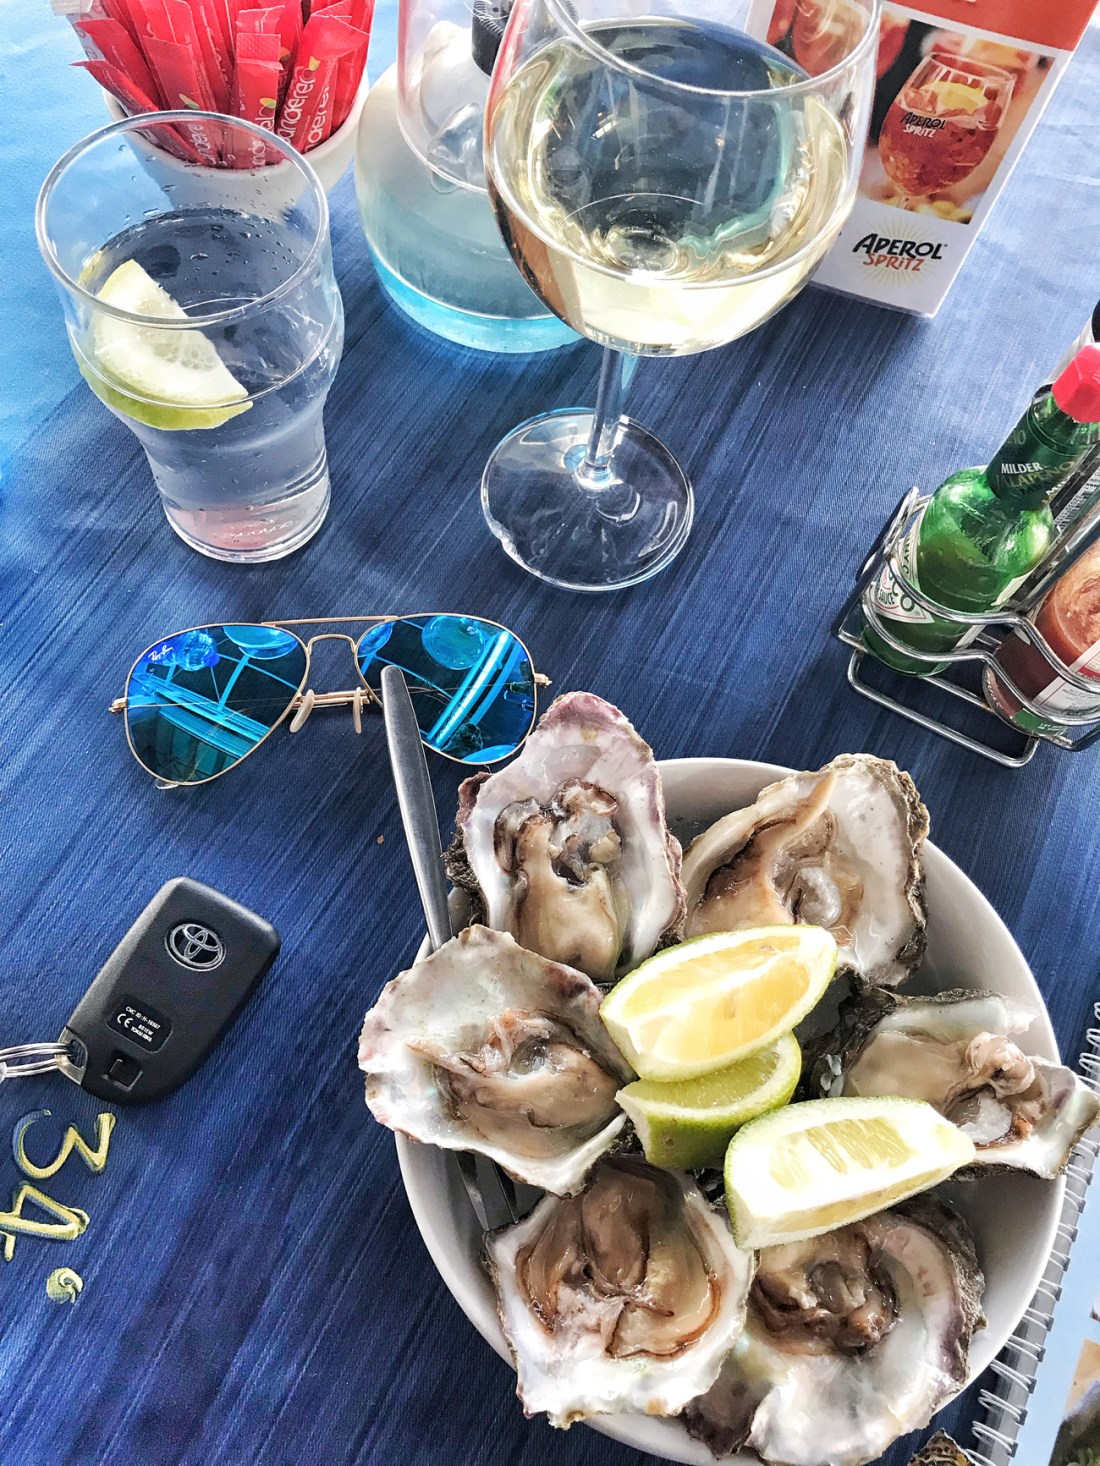 Enjoying the famous Knysna oysters during my Garden Route roadtrip in South Africa!